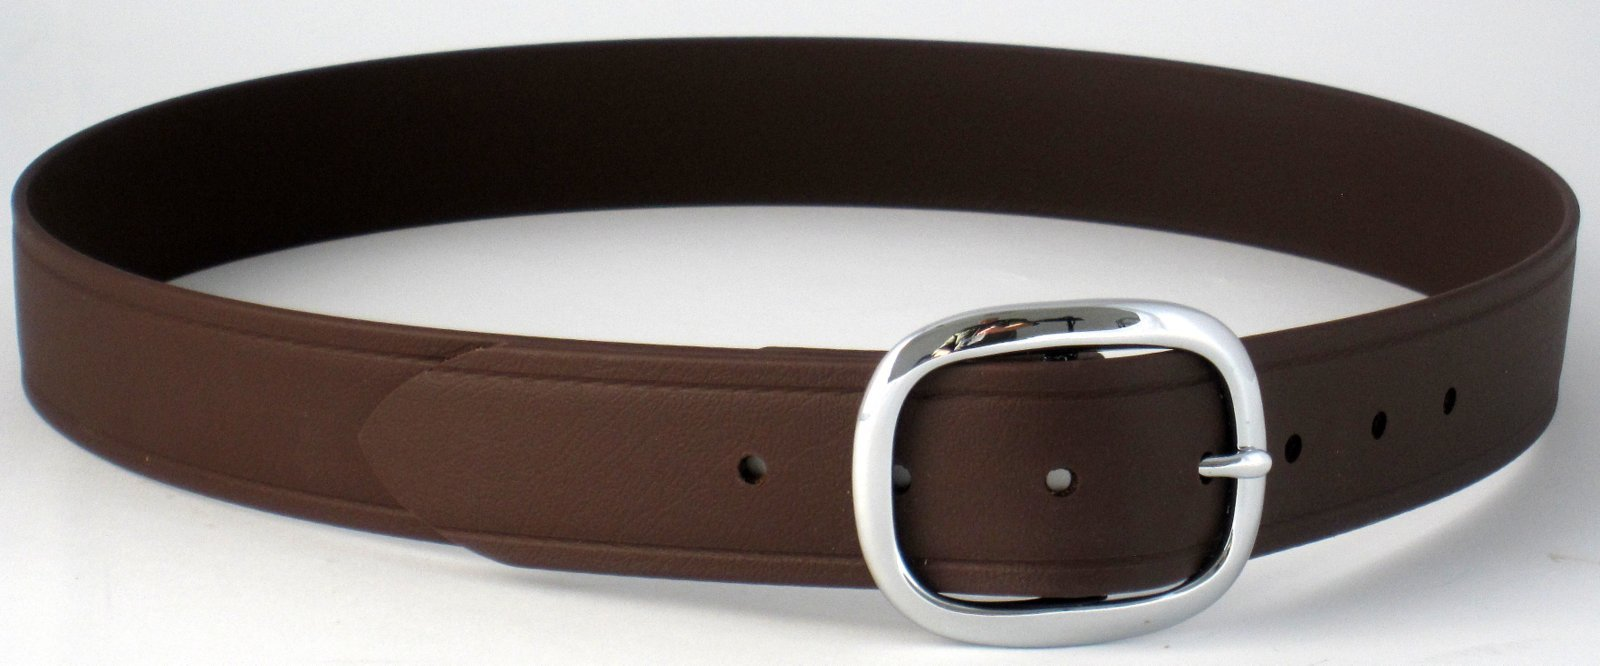 The BioThane Super Belt Brown with Silver Brass Buckle